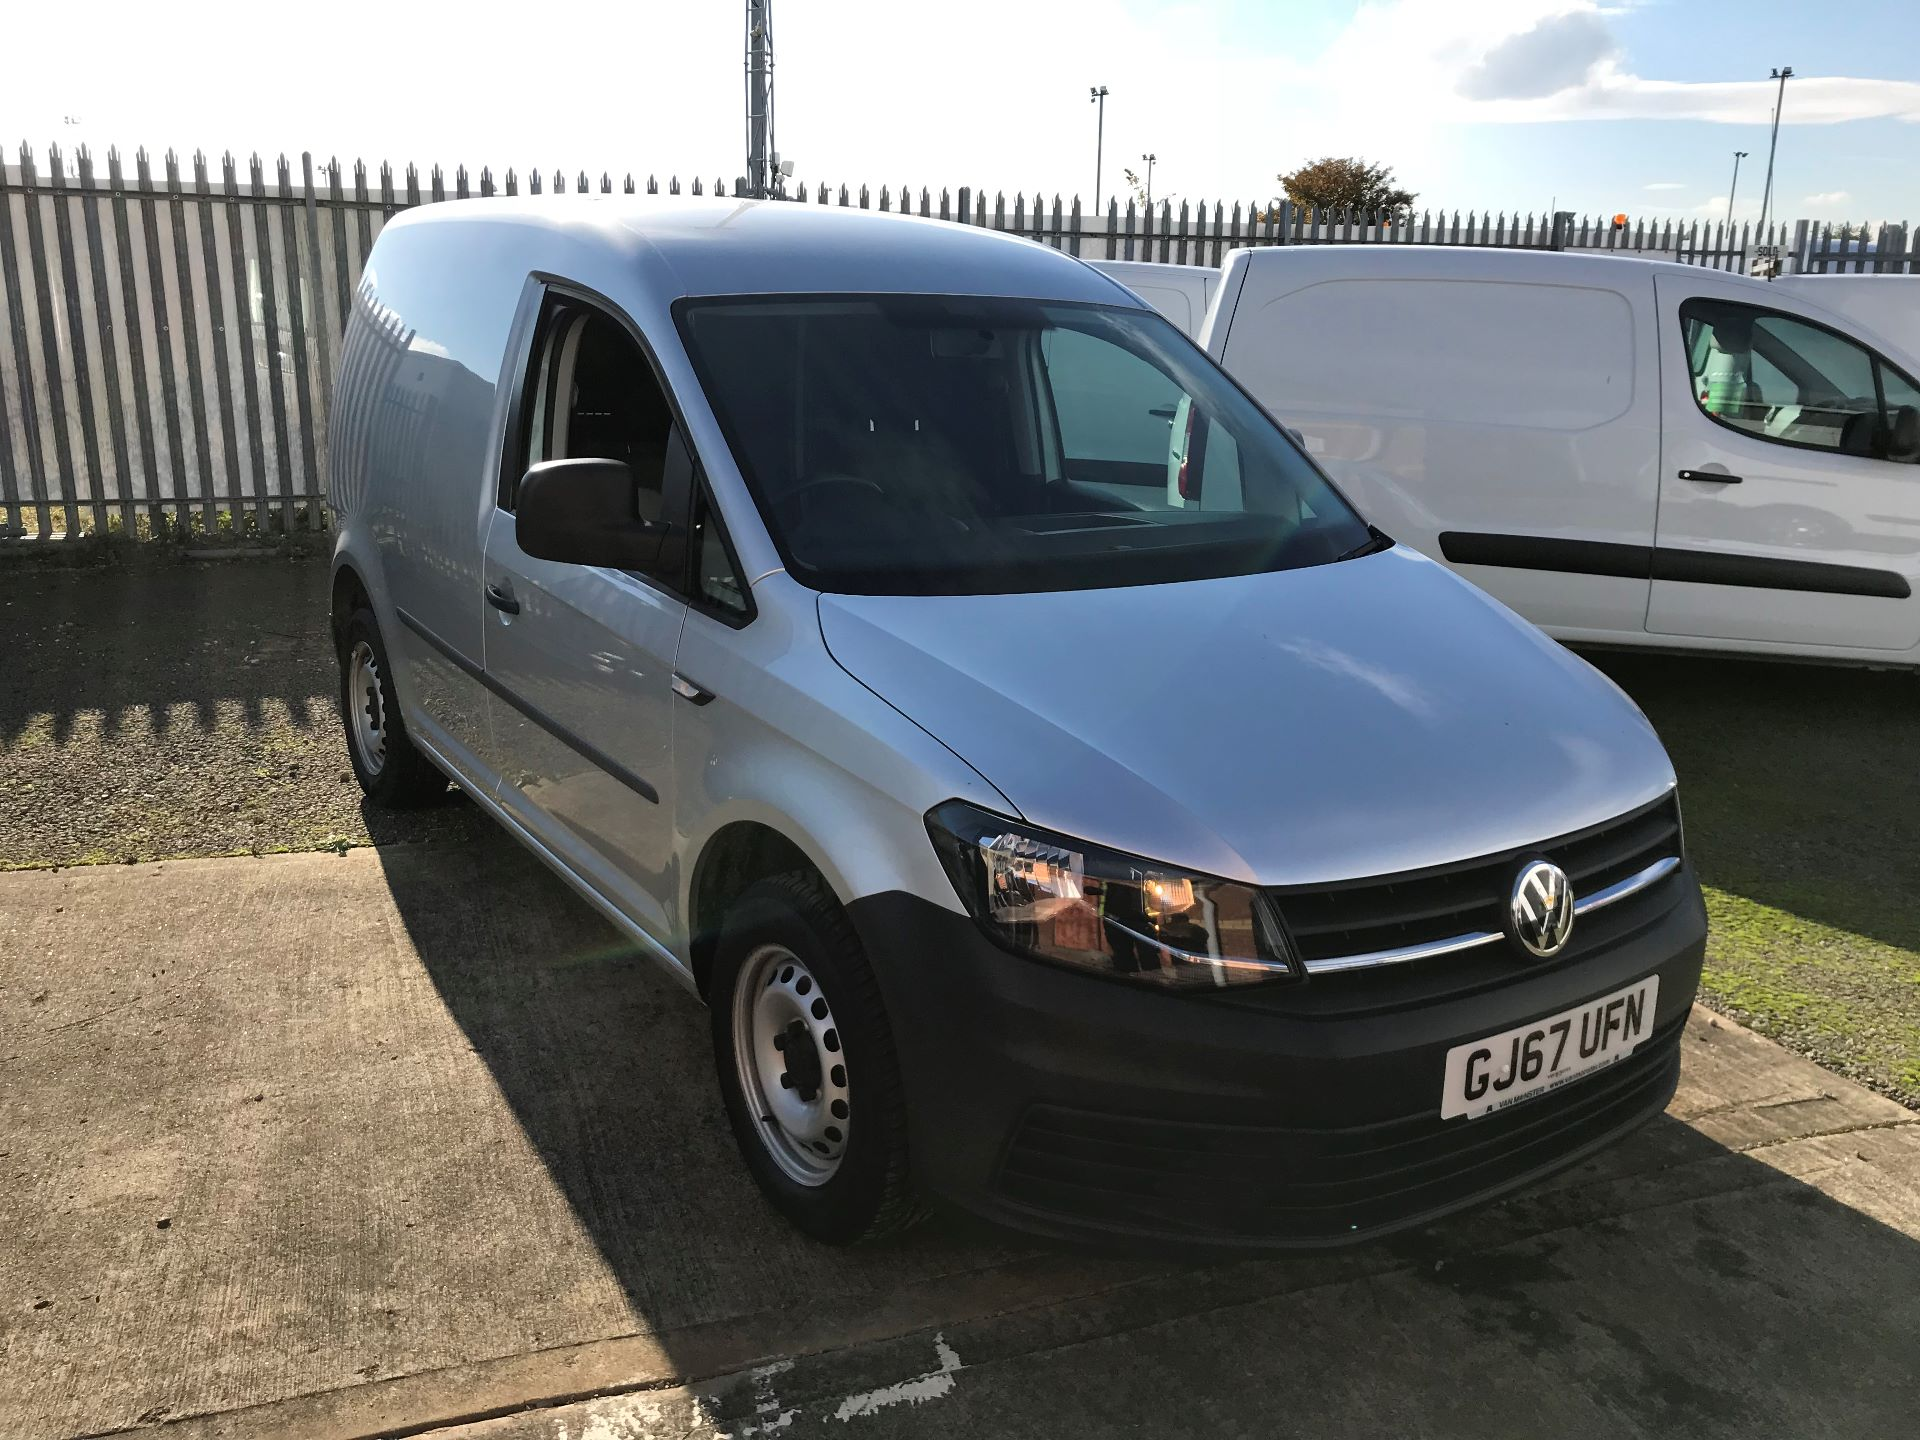 2017 Volkswagen Caddy 2.0 Tdi Bluemotion Tech 102Ps Startline Van (GJ67UFN)